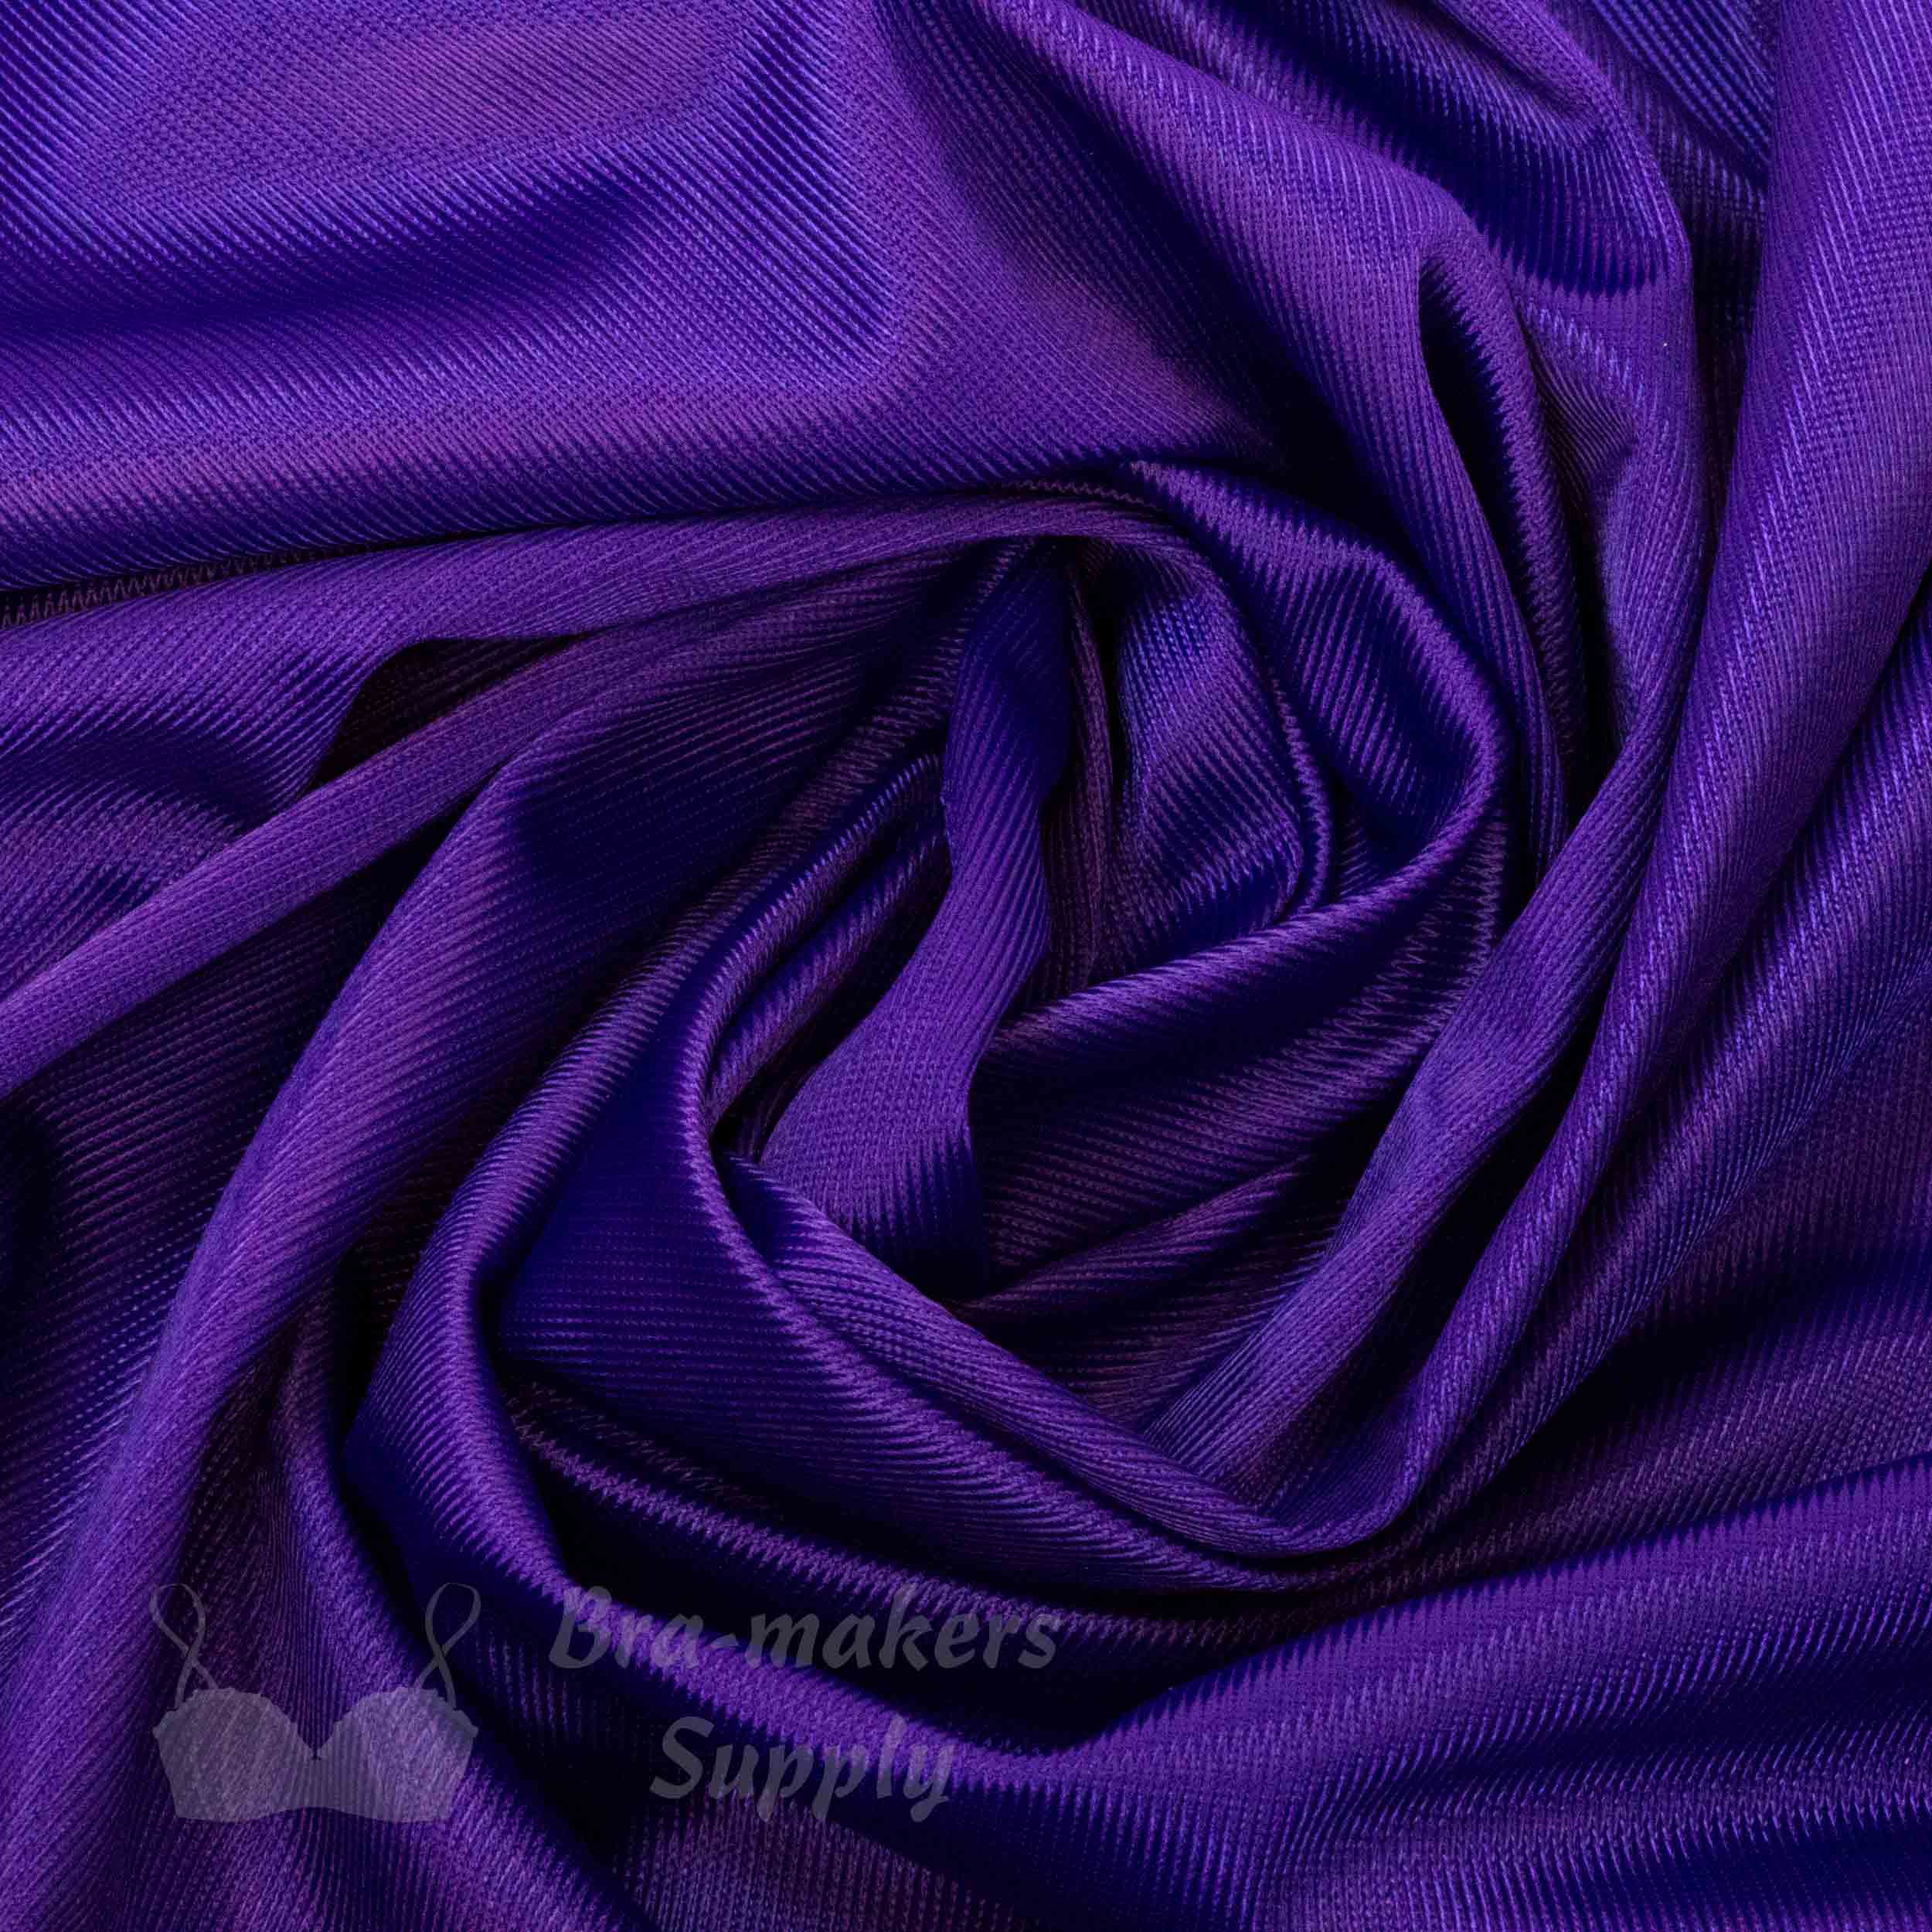 Duoplex Fabric For Bra Making Available In The Uk Fit2sew